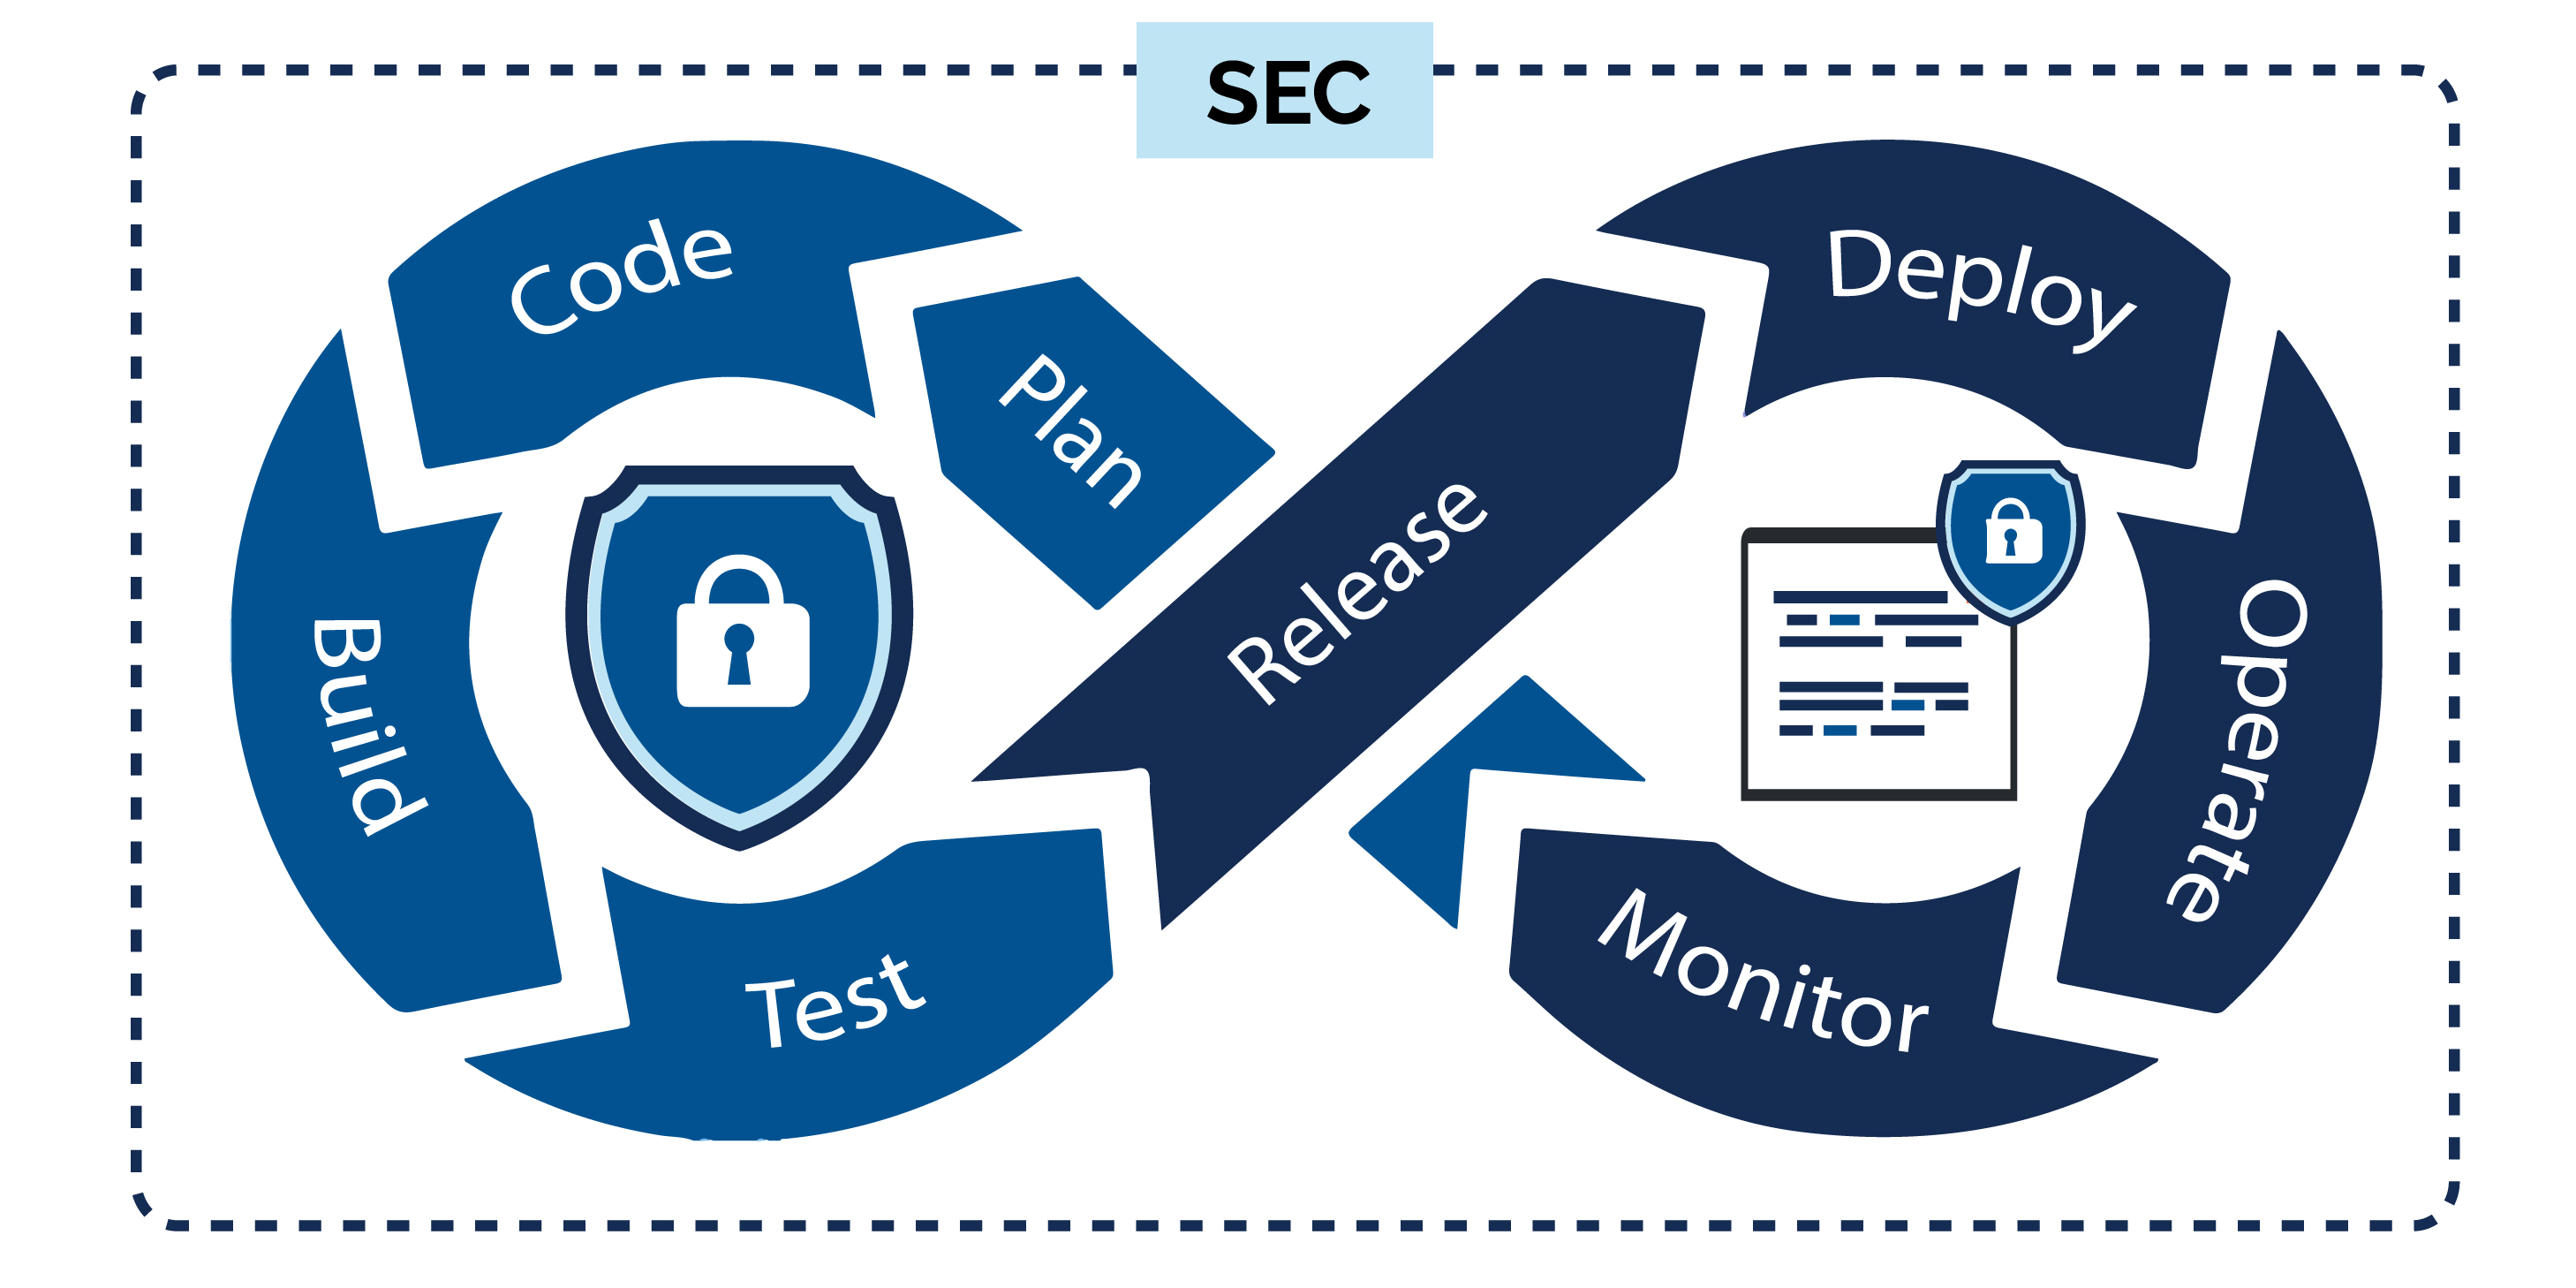 diagram depicting the relationship between DevOps and Security